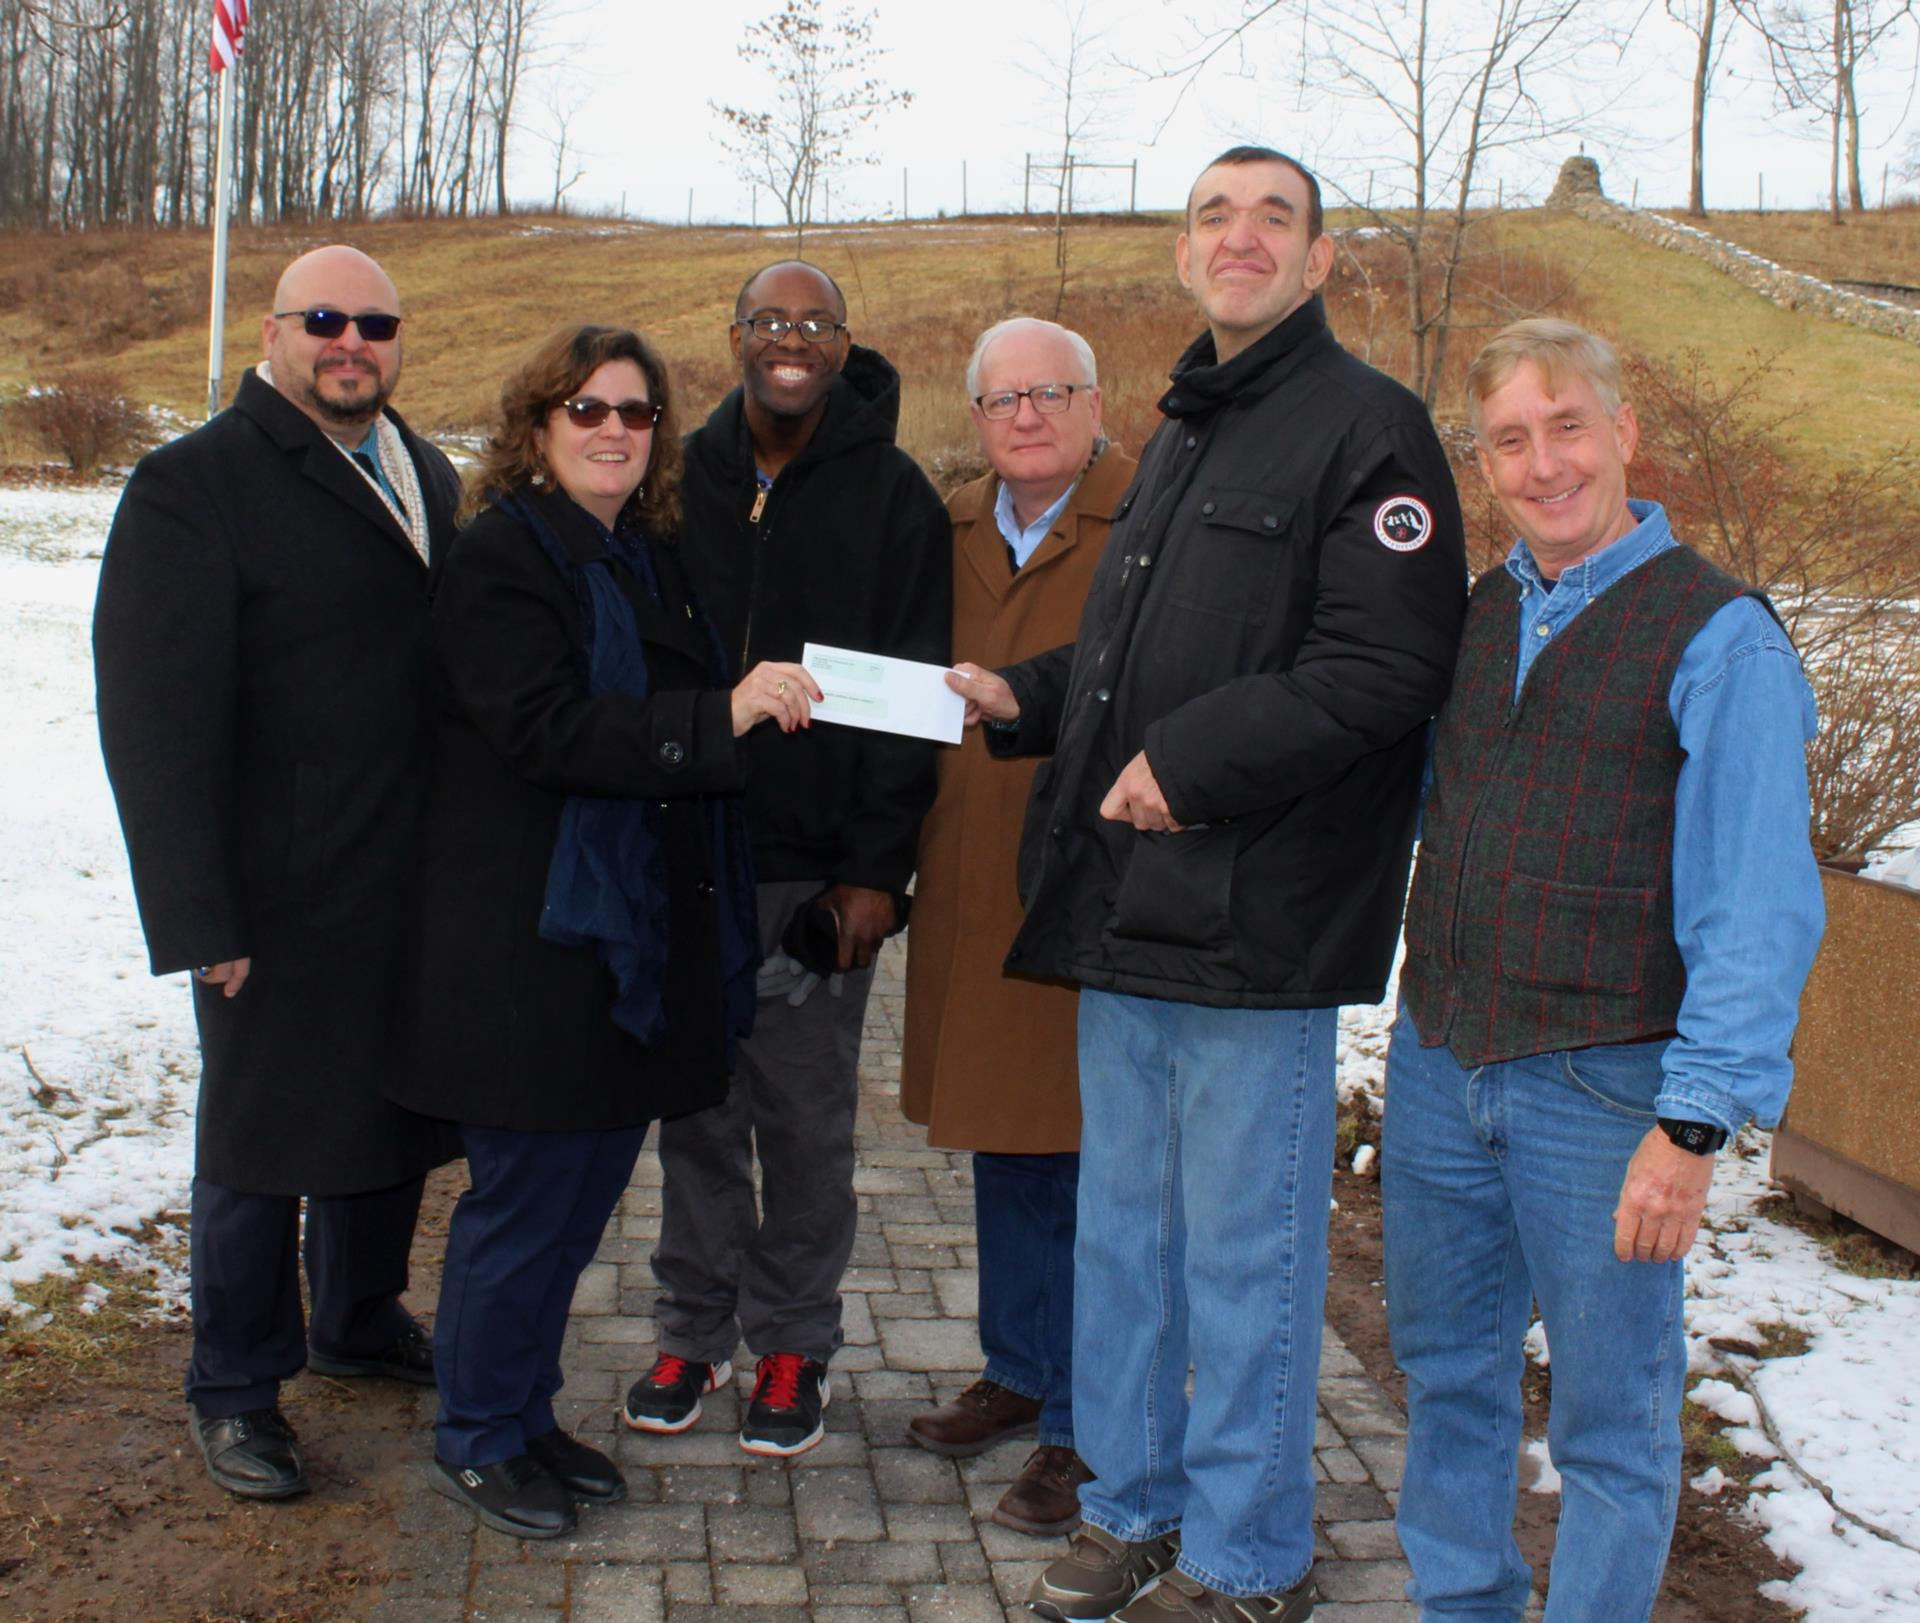 Picture: Cetner of Discovery Presents Check for BCES Hiking Trail